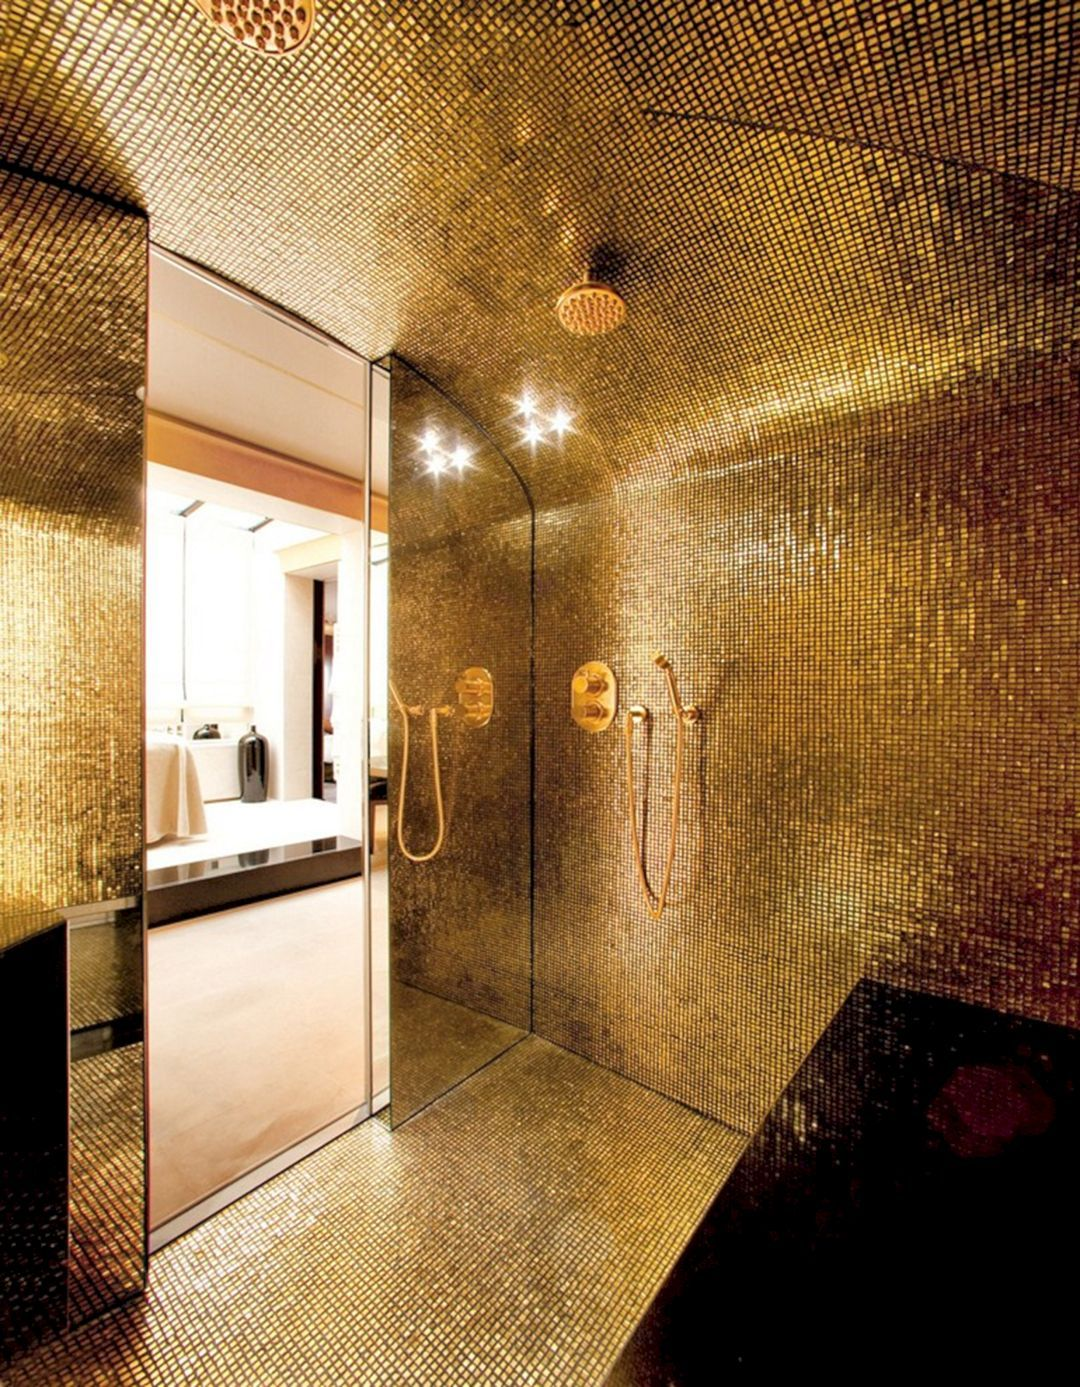 Wicked 24 Luxurious Gold Master Bathroom Design Ideas https://24spaces.com/bathroom/24-luxurious-gold-master-bathroom-design-ideas/